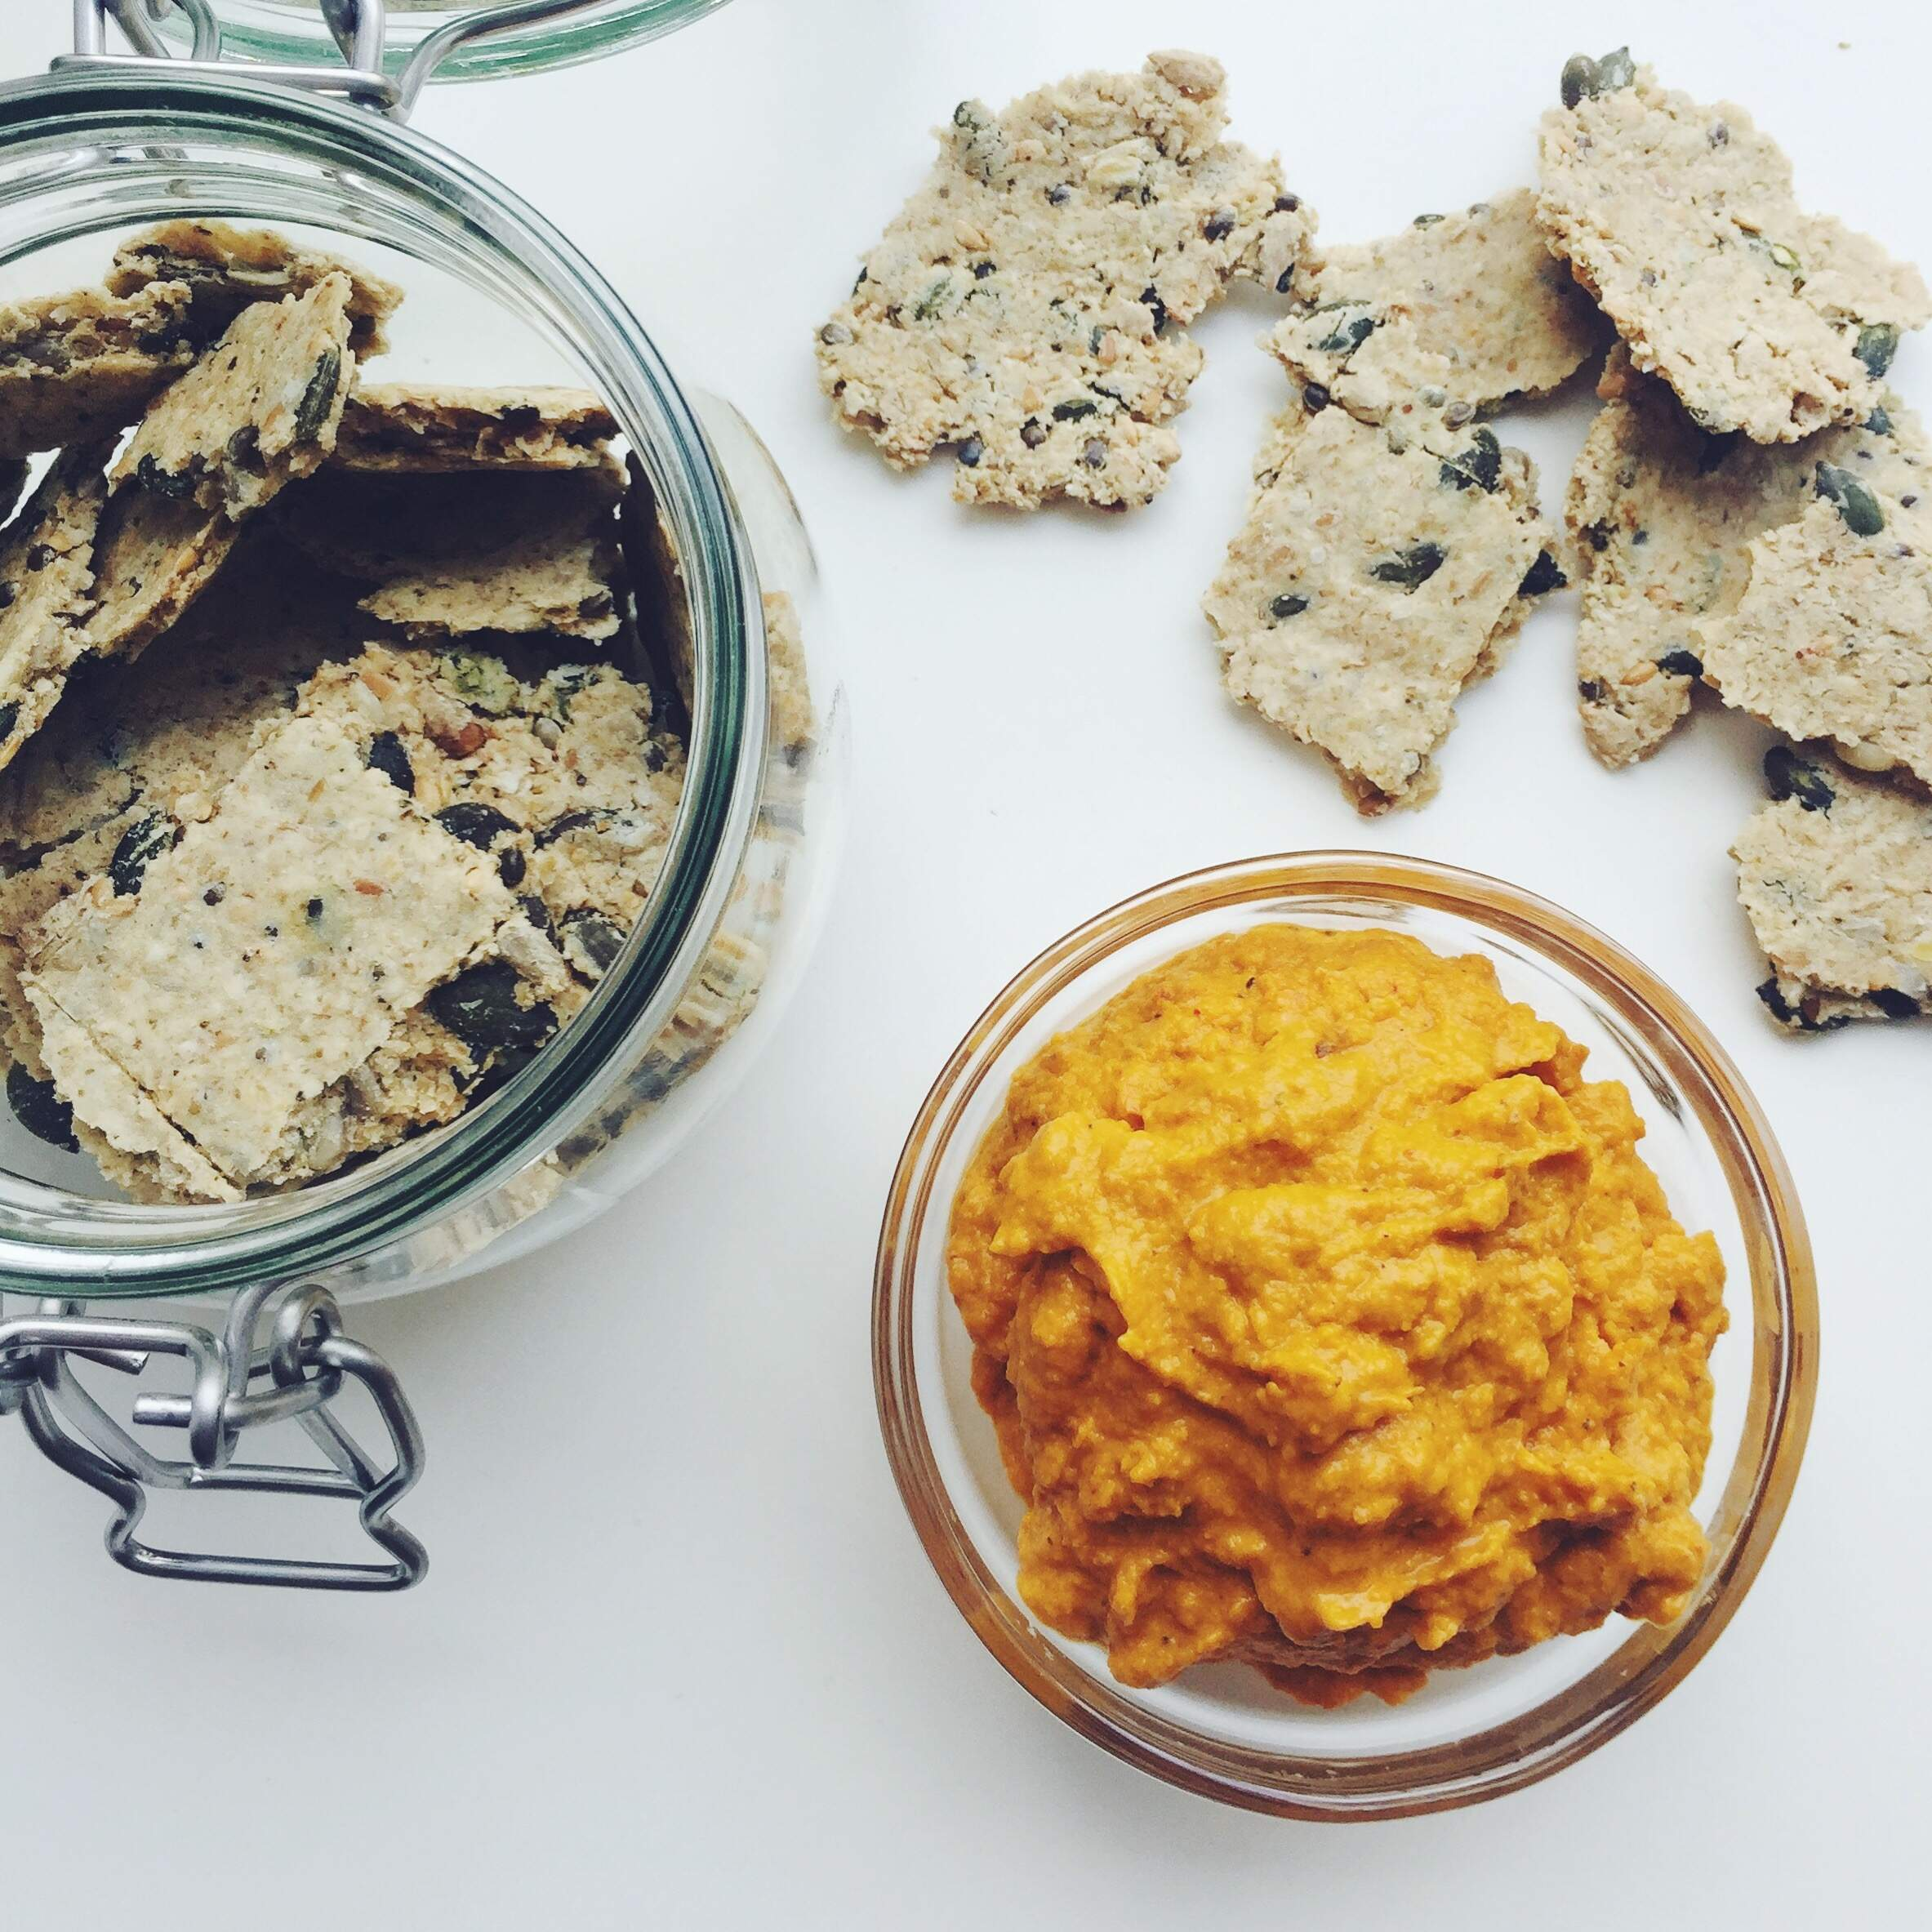 Roasted Carrot & Tahini Dip With Seedy Oat Crackers